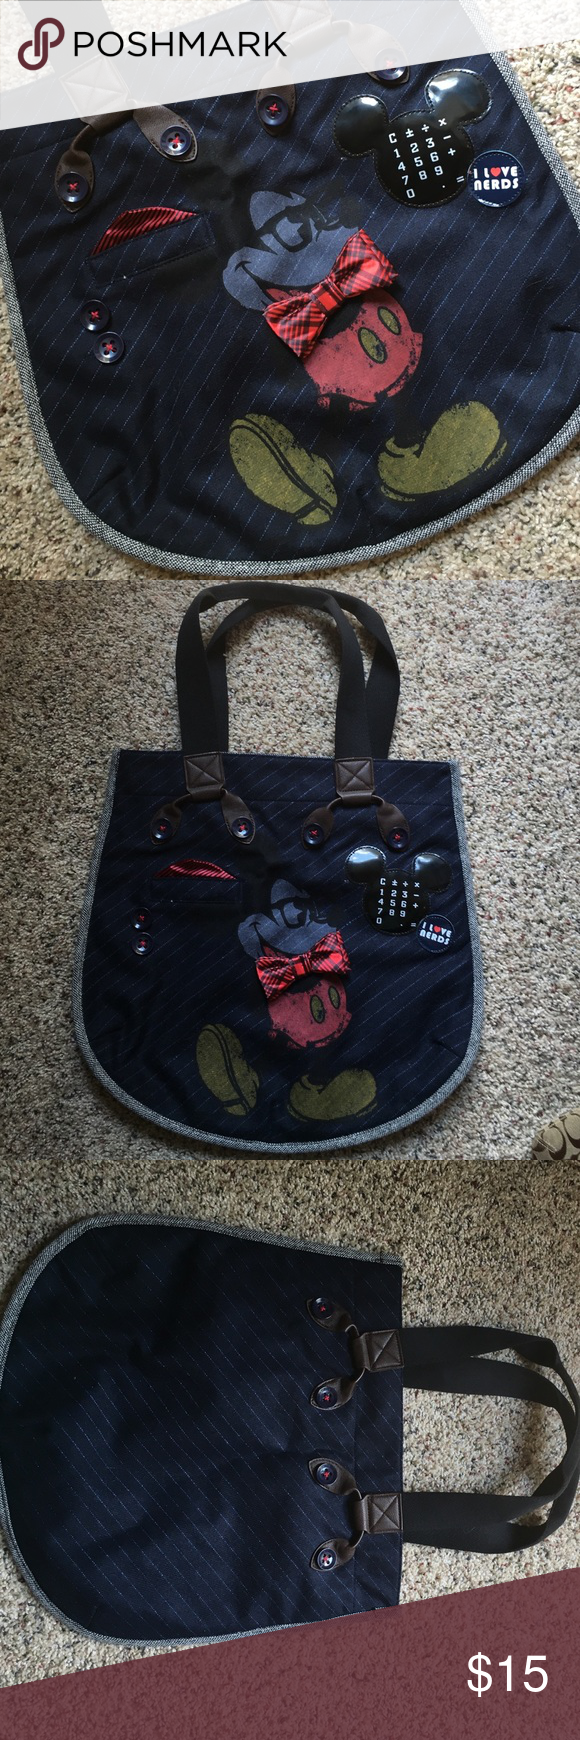 """Authentic Disney Parks Mickey """"Nerd"""" Shoulder Bag Mickey Mouse """"I love Nerds"""" shoulder bag is perfect for back to school! Bag is made of a navy, wool-like material with brown faux leather trim and black canvas straps. It is an authentic Disney Parks product. Measures approximately 16 inches wide by 15 inches tall at widest and tallest points. Very gently used, no rips, tears, or stains. Smoke free home. Disney Bags Shoulder Bags"""